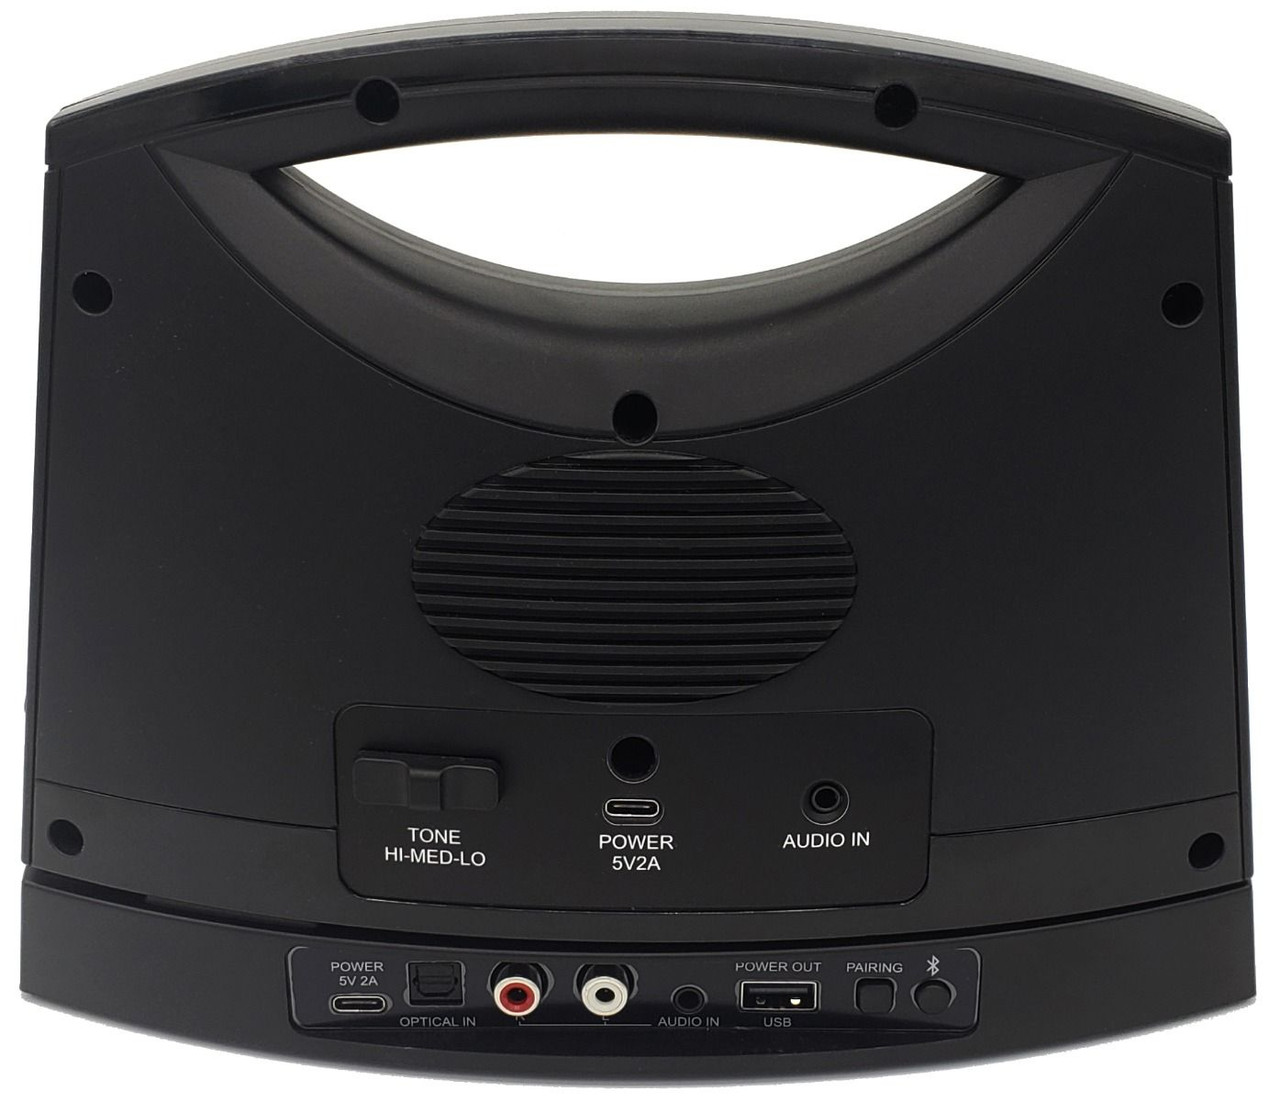 Sereonic TV SoundBox® by Serene - BT100 (Rear view showing ports and settings)